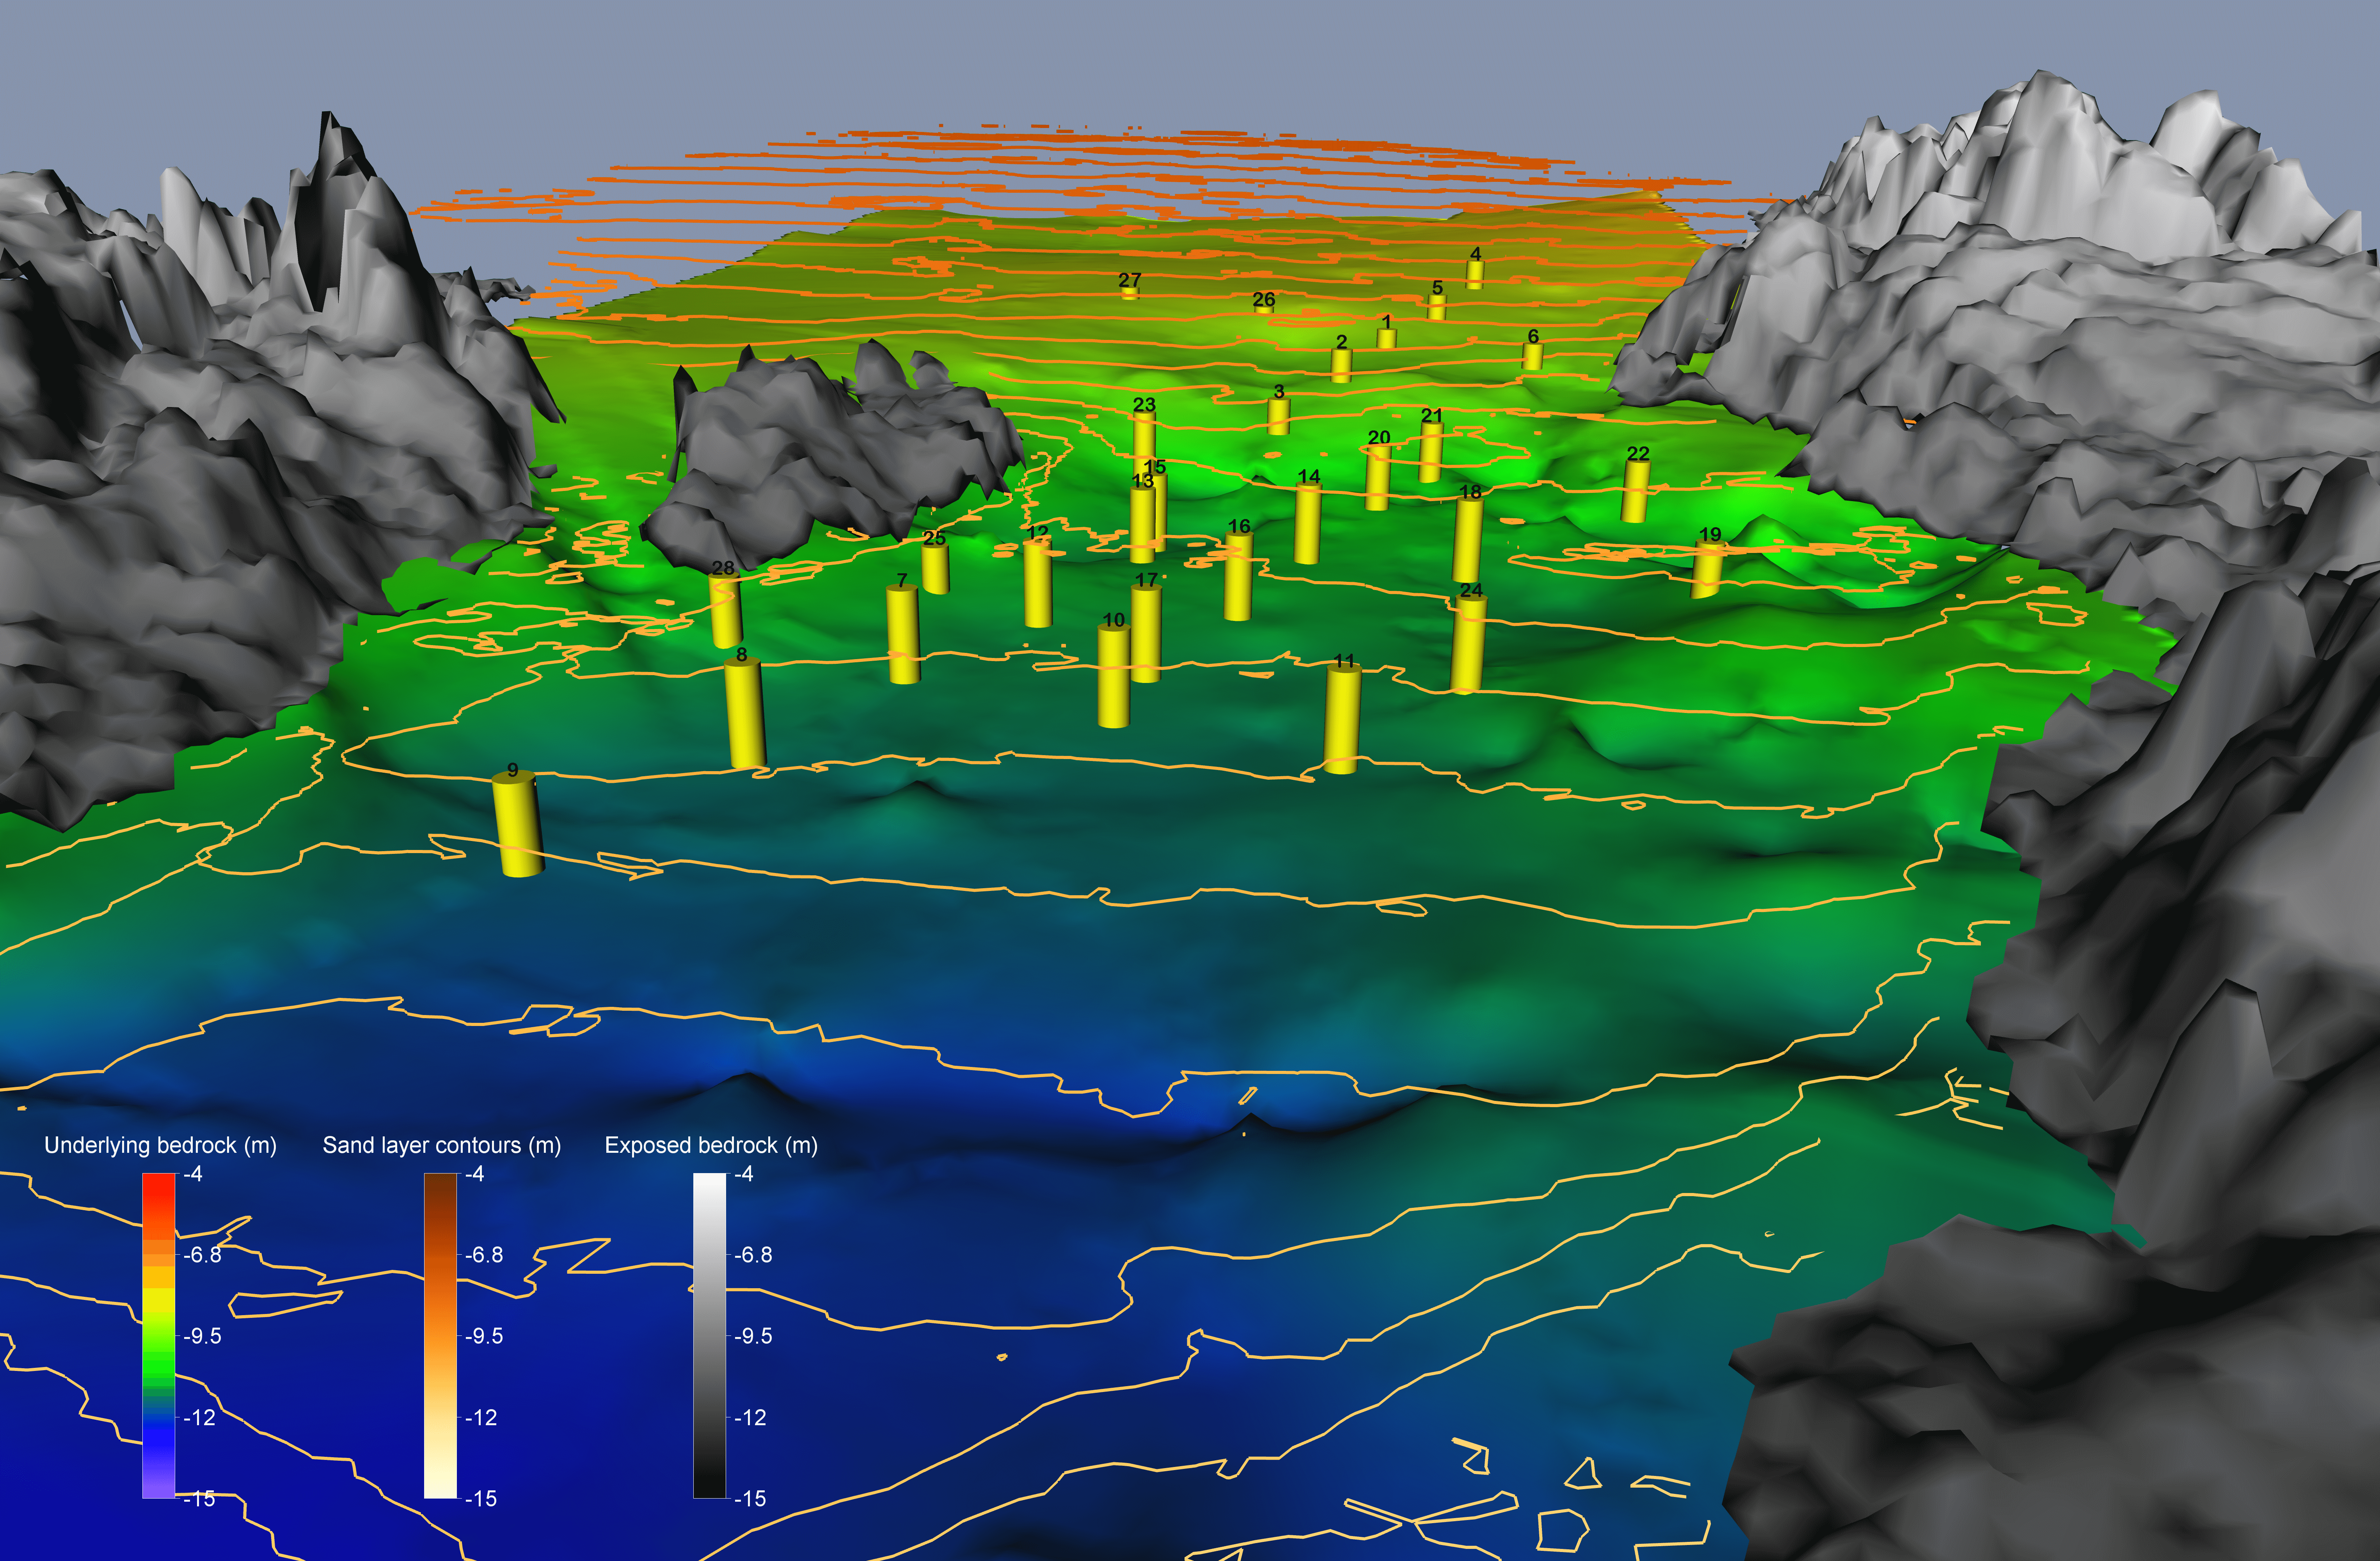 Ettrick River site bedrock and contours of exposed rock sediment created with Golden Software